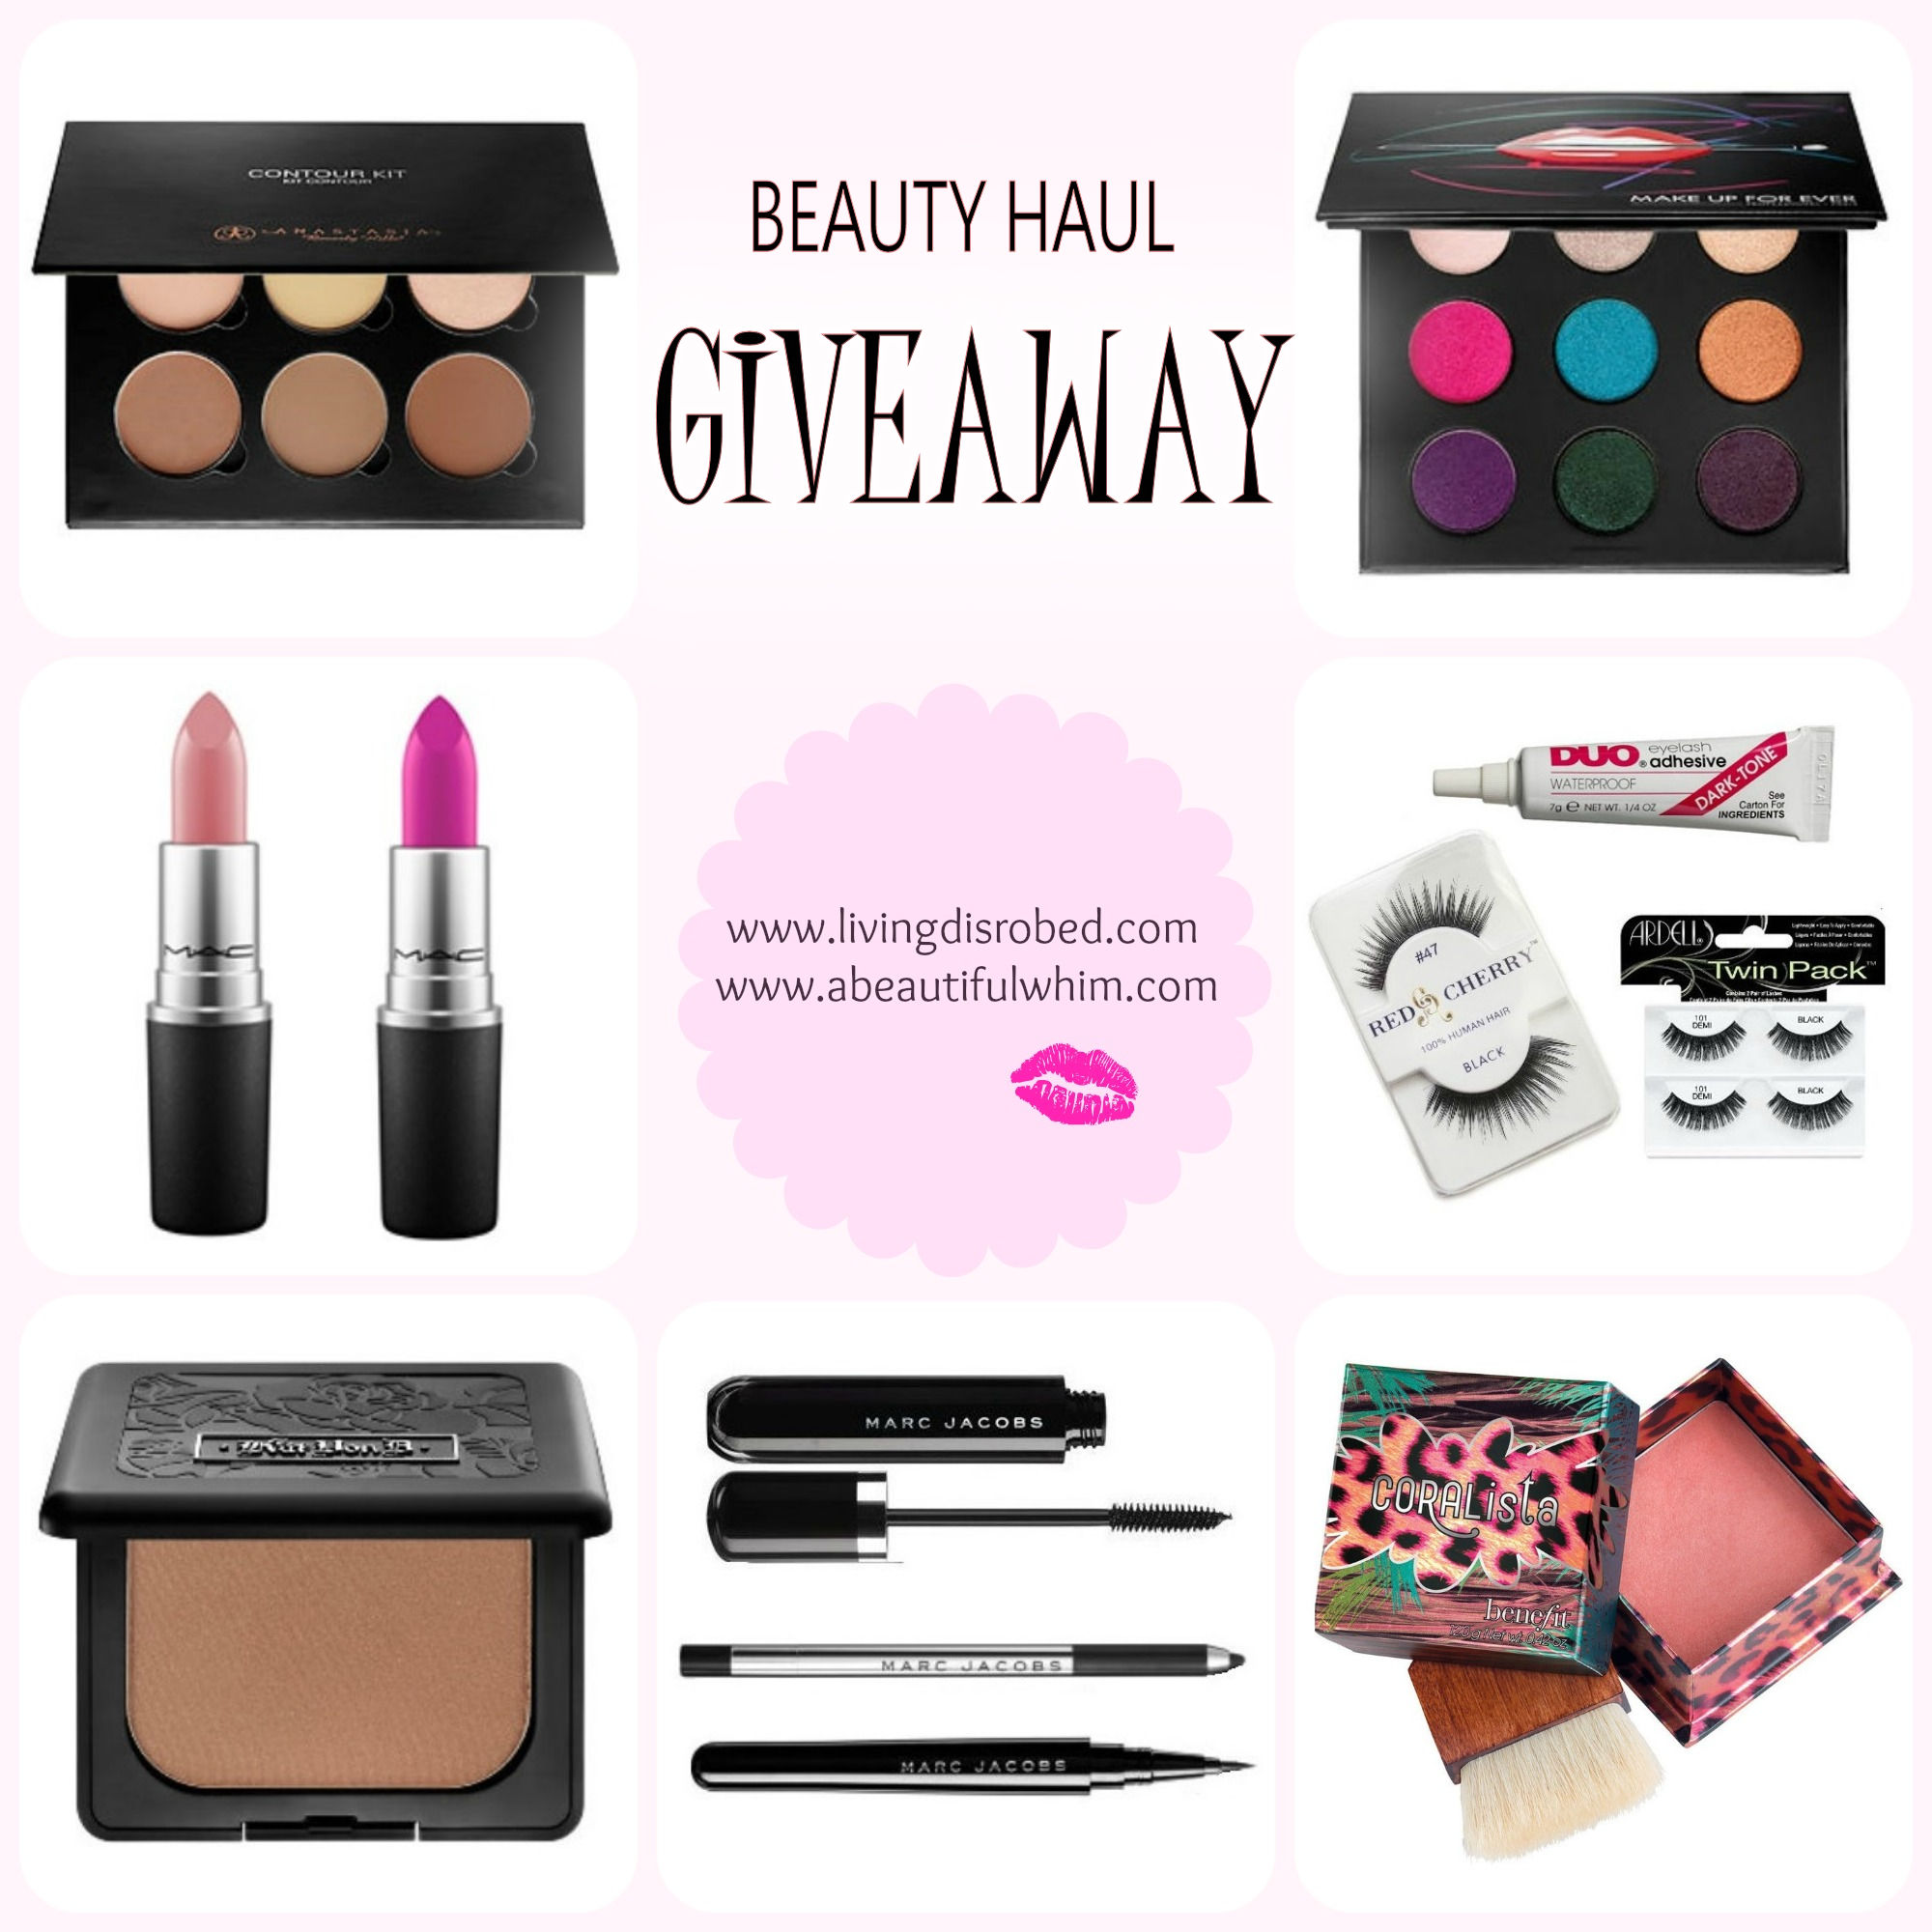 Fashion and beauty blog giveaways with few entries